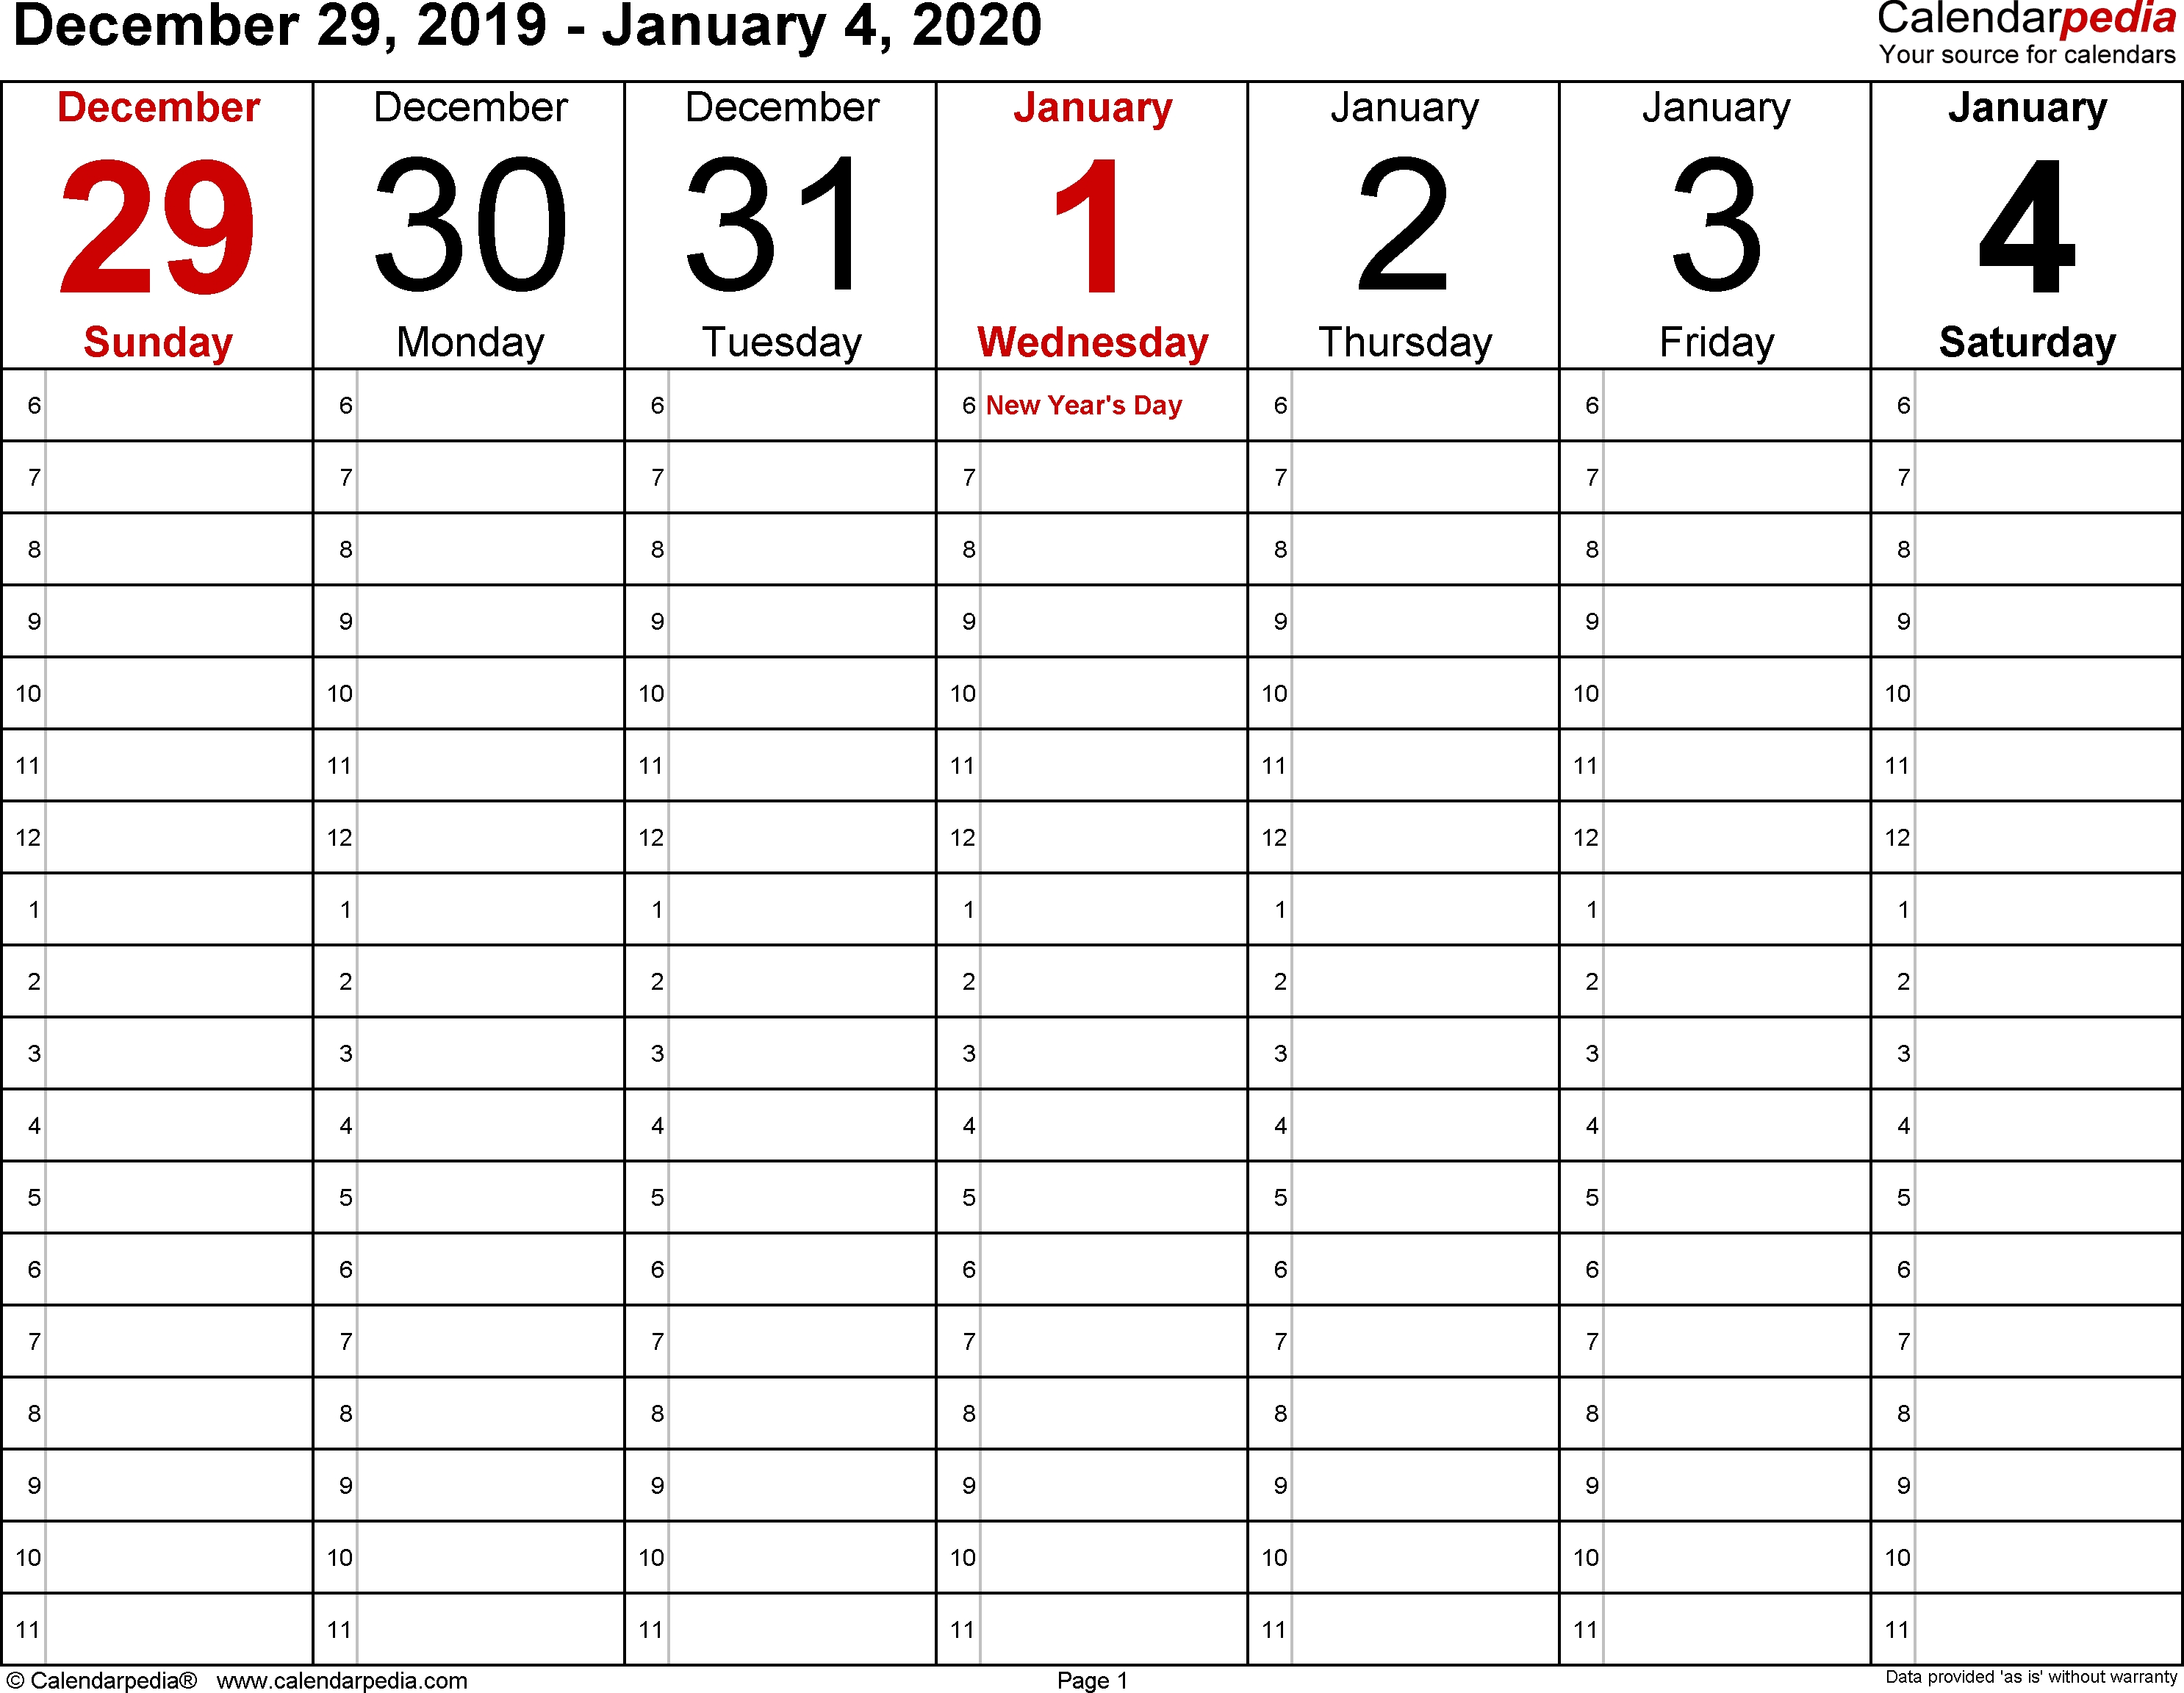 Weekly Calendar 2020 For Word - 12 Free Printable Templates-Shift Schedule Calendar Template 2020